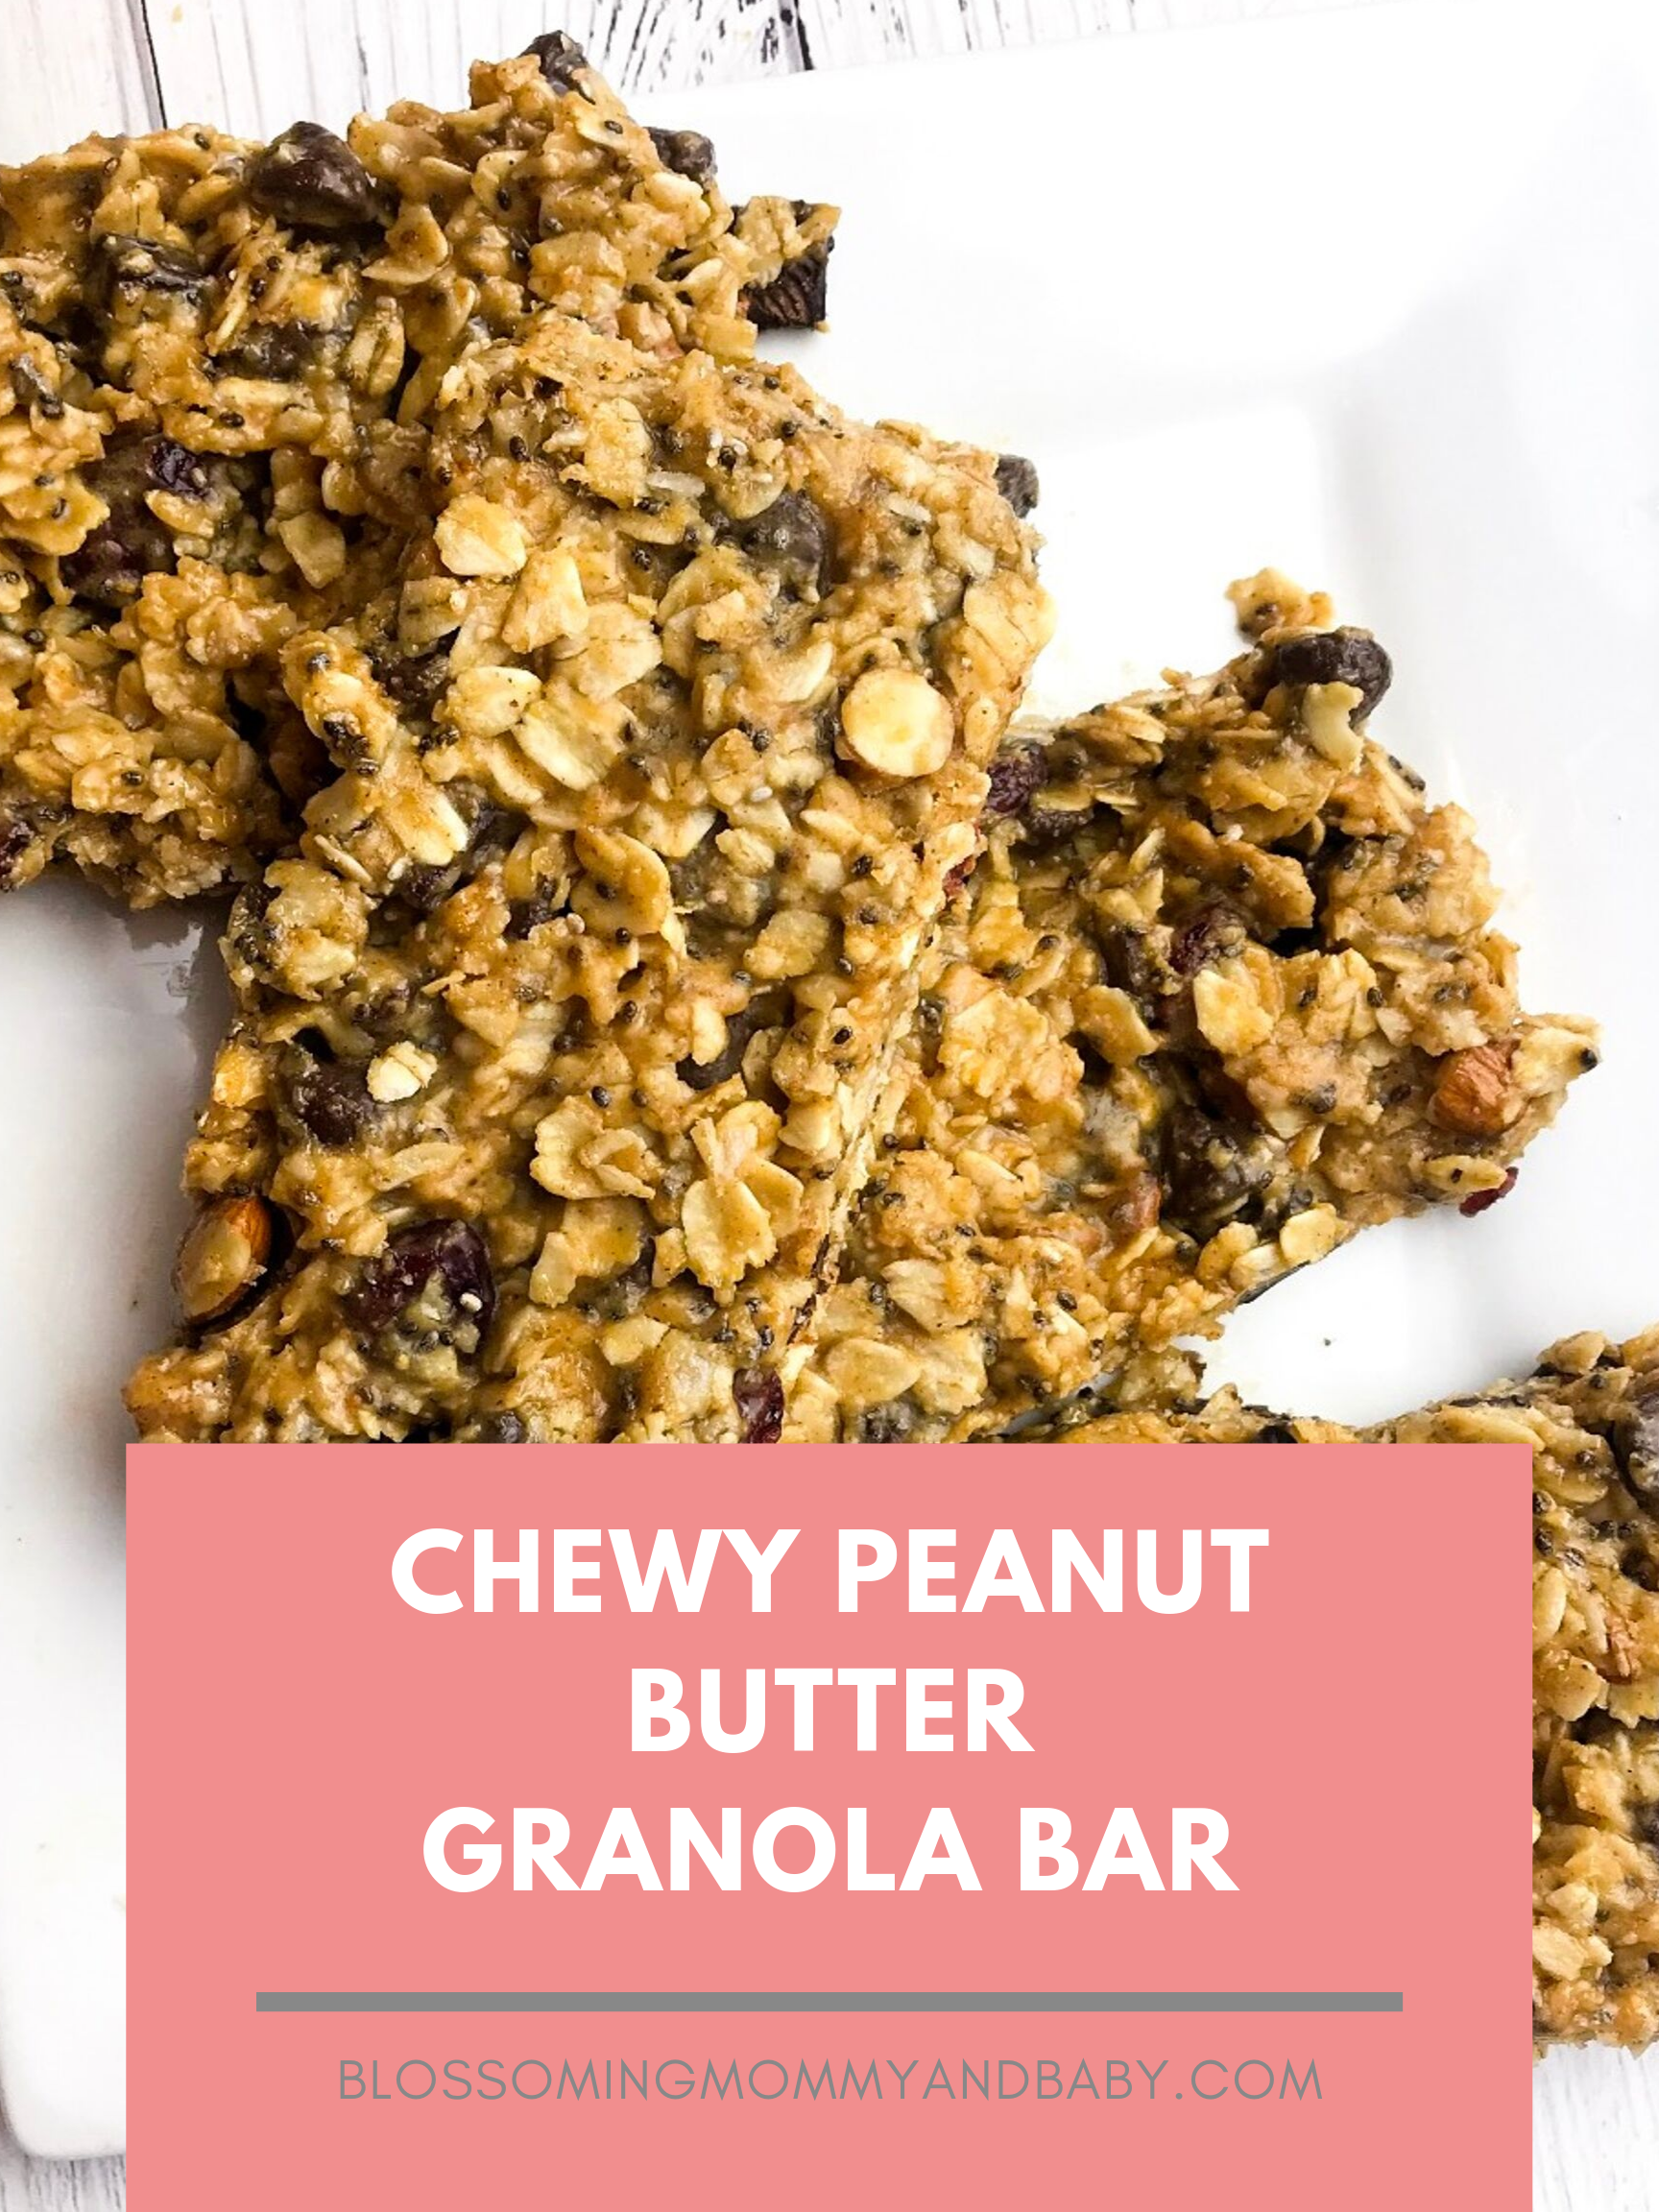 Chewy Peanut Butter Granola Bar | Blossoming Mommy and Baby